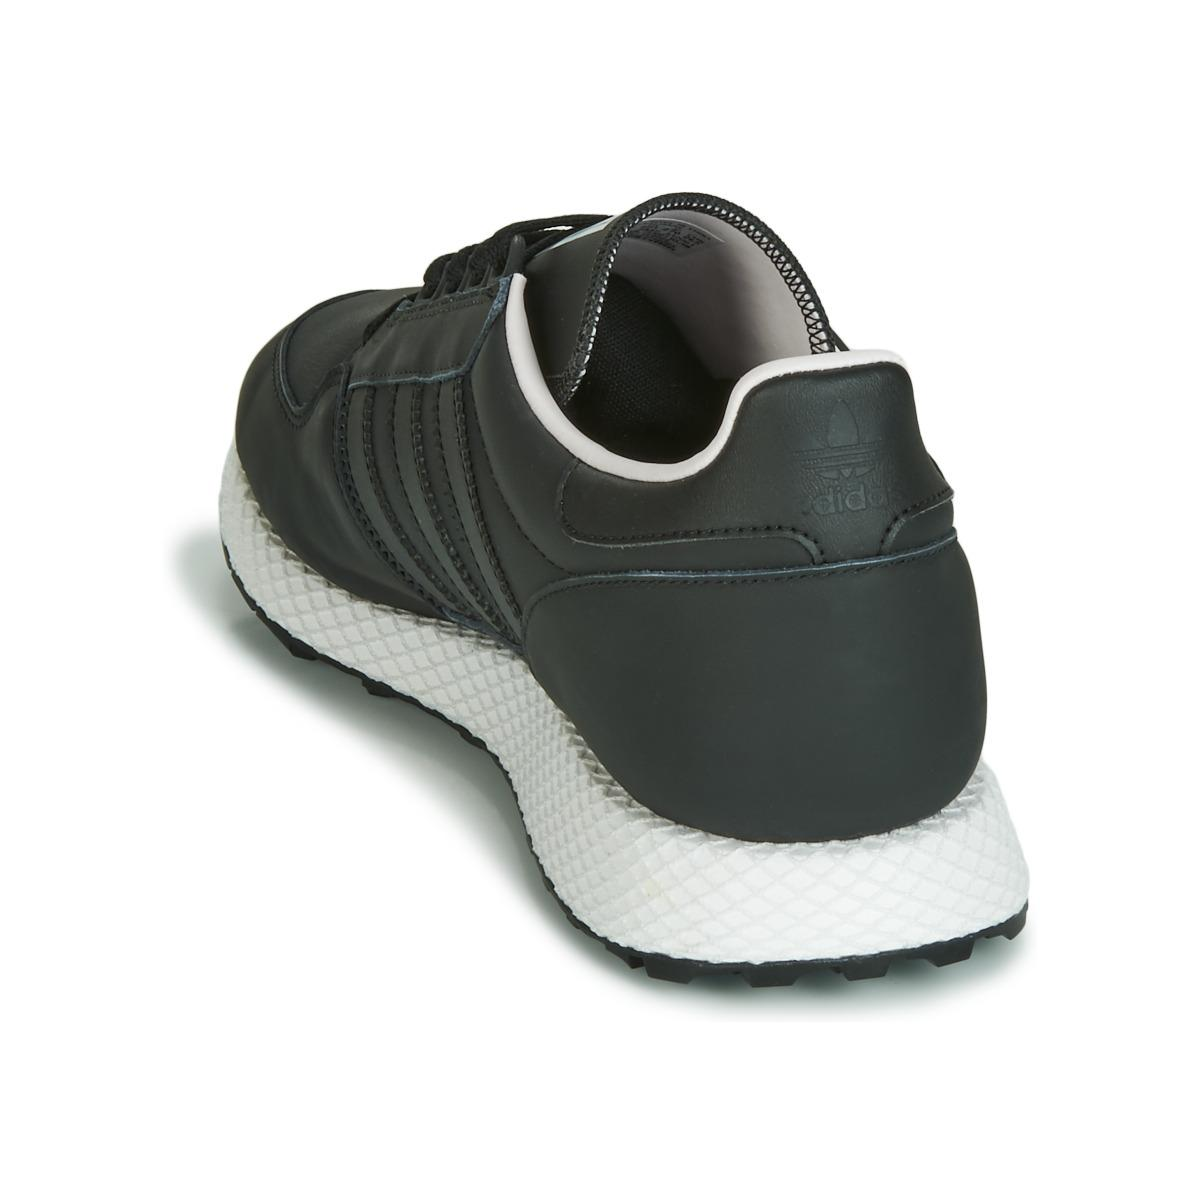 Baskets Cuir adidas en coloris Noir - 6 % de réduction mov1